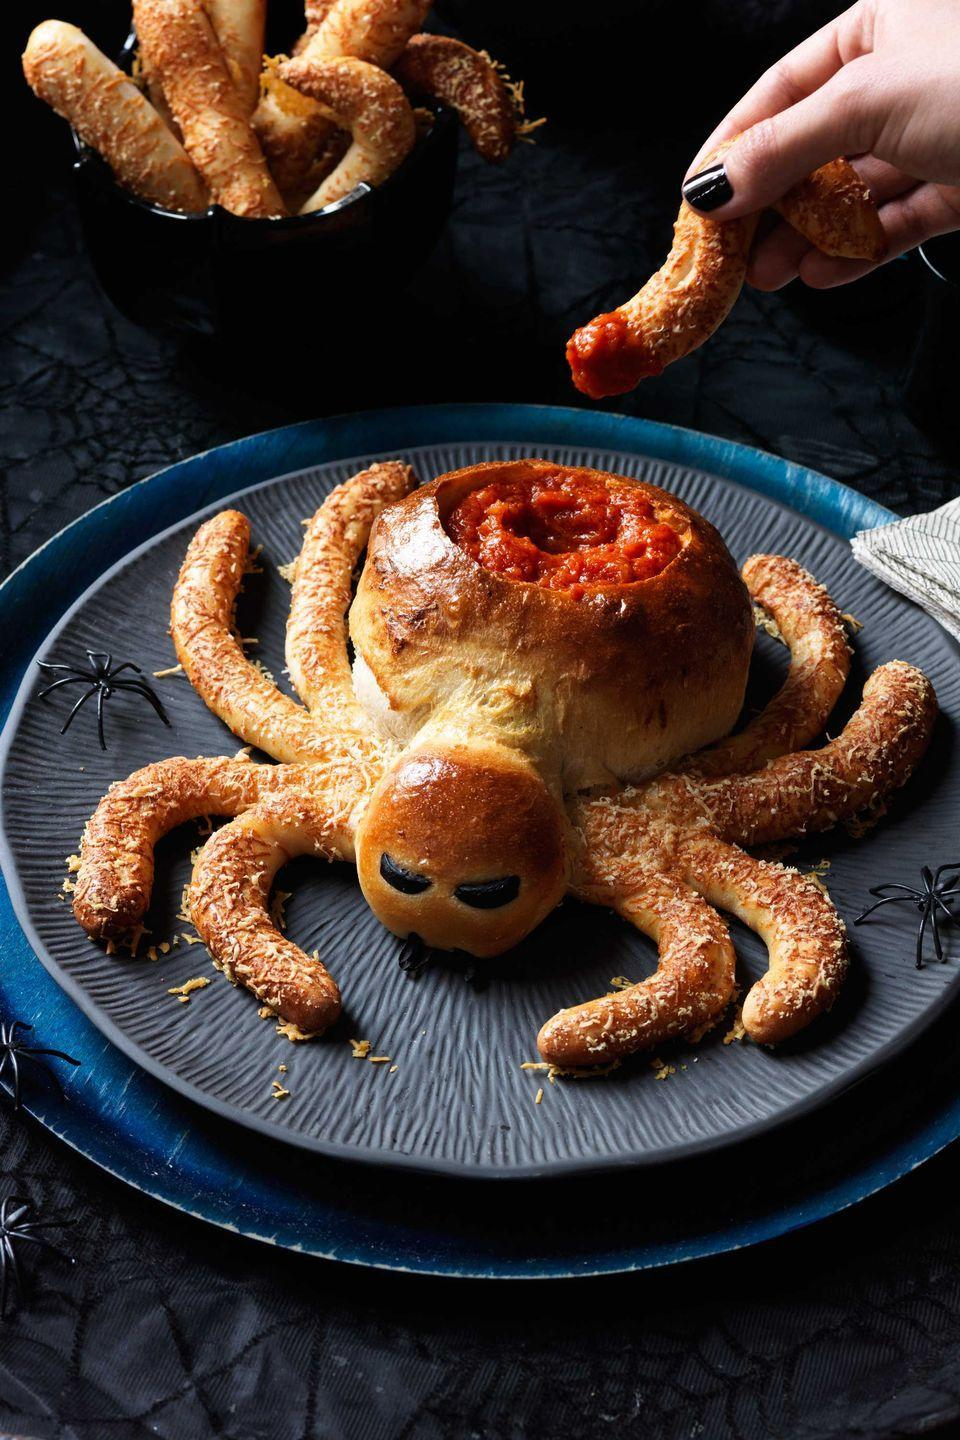 """<p>Spin a web of doughy deliciousness with this party-perfect Halloween appetizer. If you can't find pizza dough at your supermarket, try a local pizza parlor, which will likely sell you a fresh ball. For extra effect, sprinkle the legs with poppy seeds, in addition to Parmesan.<br></p><p><a href=""""https://www.womansday.com/food-recipes/food-drinks/recipes/a11906/saucy-spider-hairy-leg-sticks-recipe-123433/"""" rel=""""nofollow noopener"""" target=""""_blank"""" data-ylk=""""slk:Get the Saucy Spider recipe."""" class=""""link rapid-noclick-resp""""><em>Get the Saucy Spider recipe.</em></a></p>"""